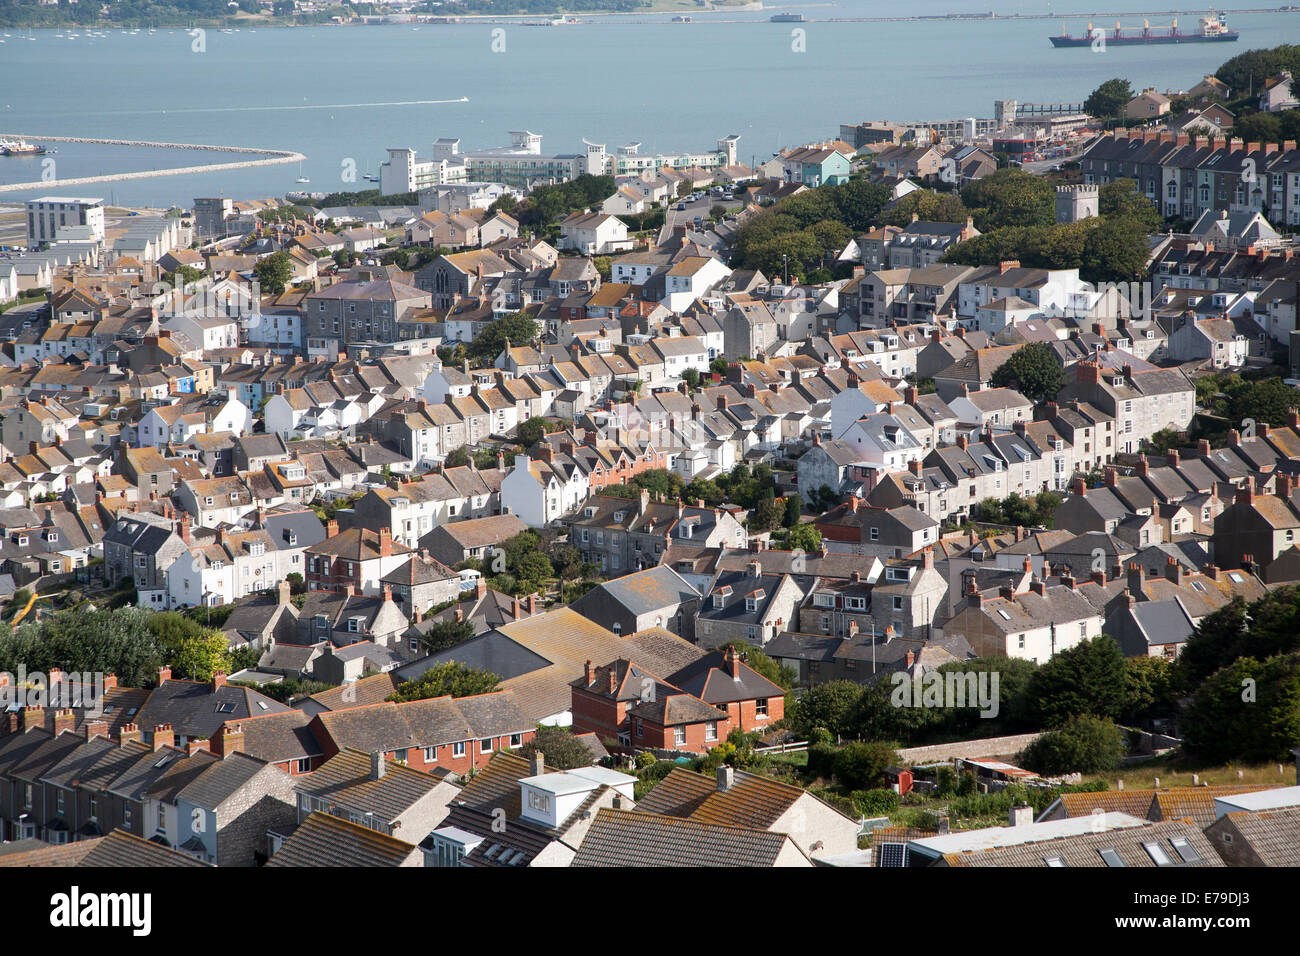 High density housing in Fortuneswell, Isle of Portland, Dorset, England with Weymouth harbour in the background - Stock Image